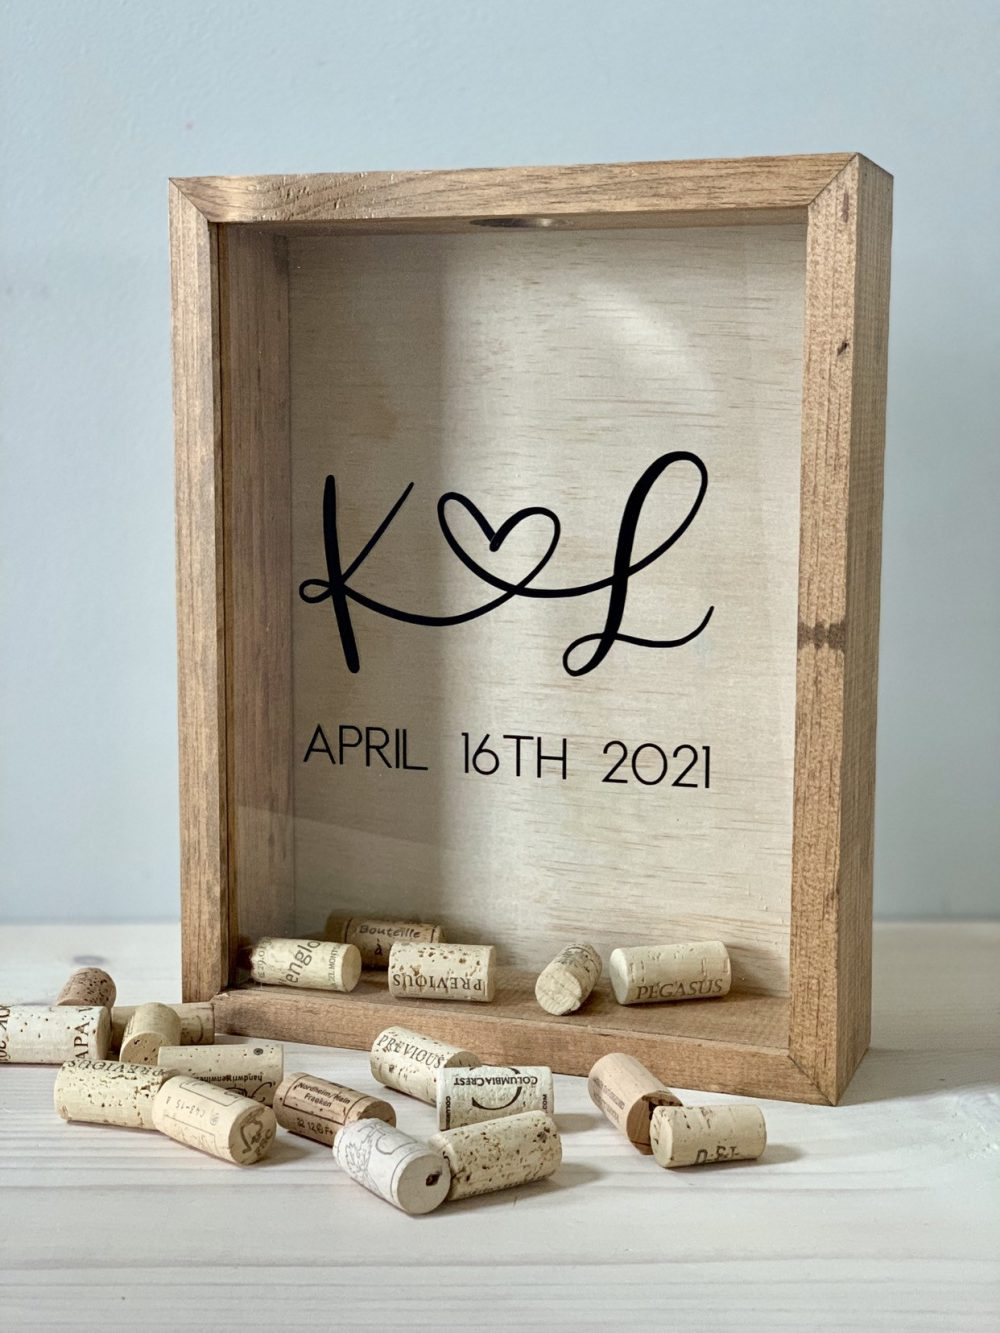 Wine Cork Holder | Bridal Shower Gift Wood Guest Book Shadow Box For Corks, Photos, Messages, Flowers & More 11x14 Inches